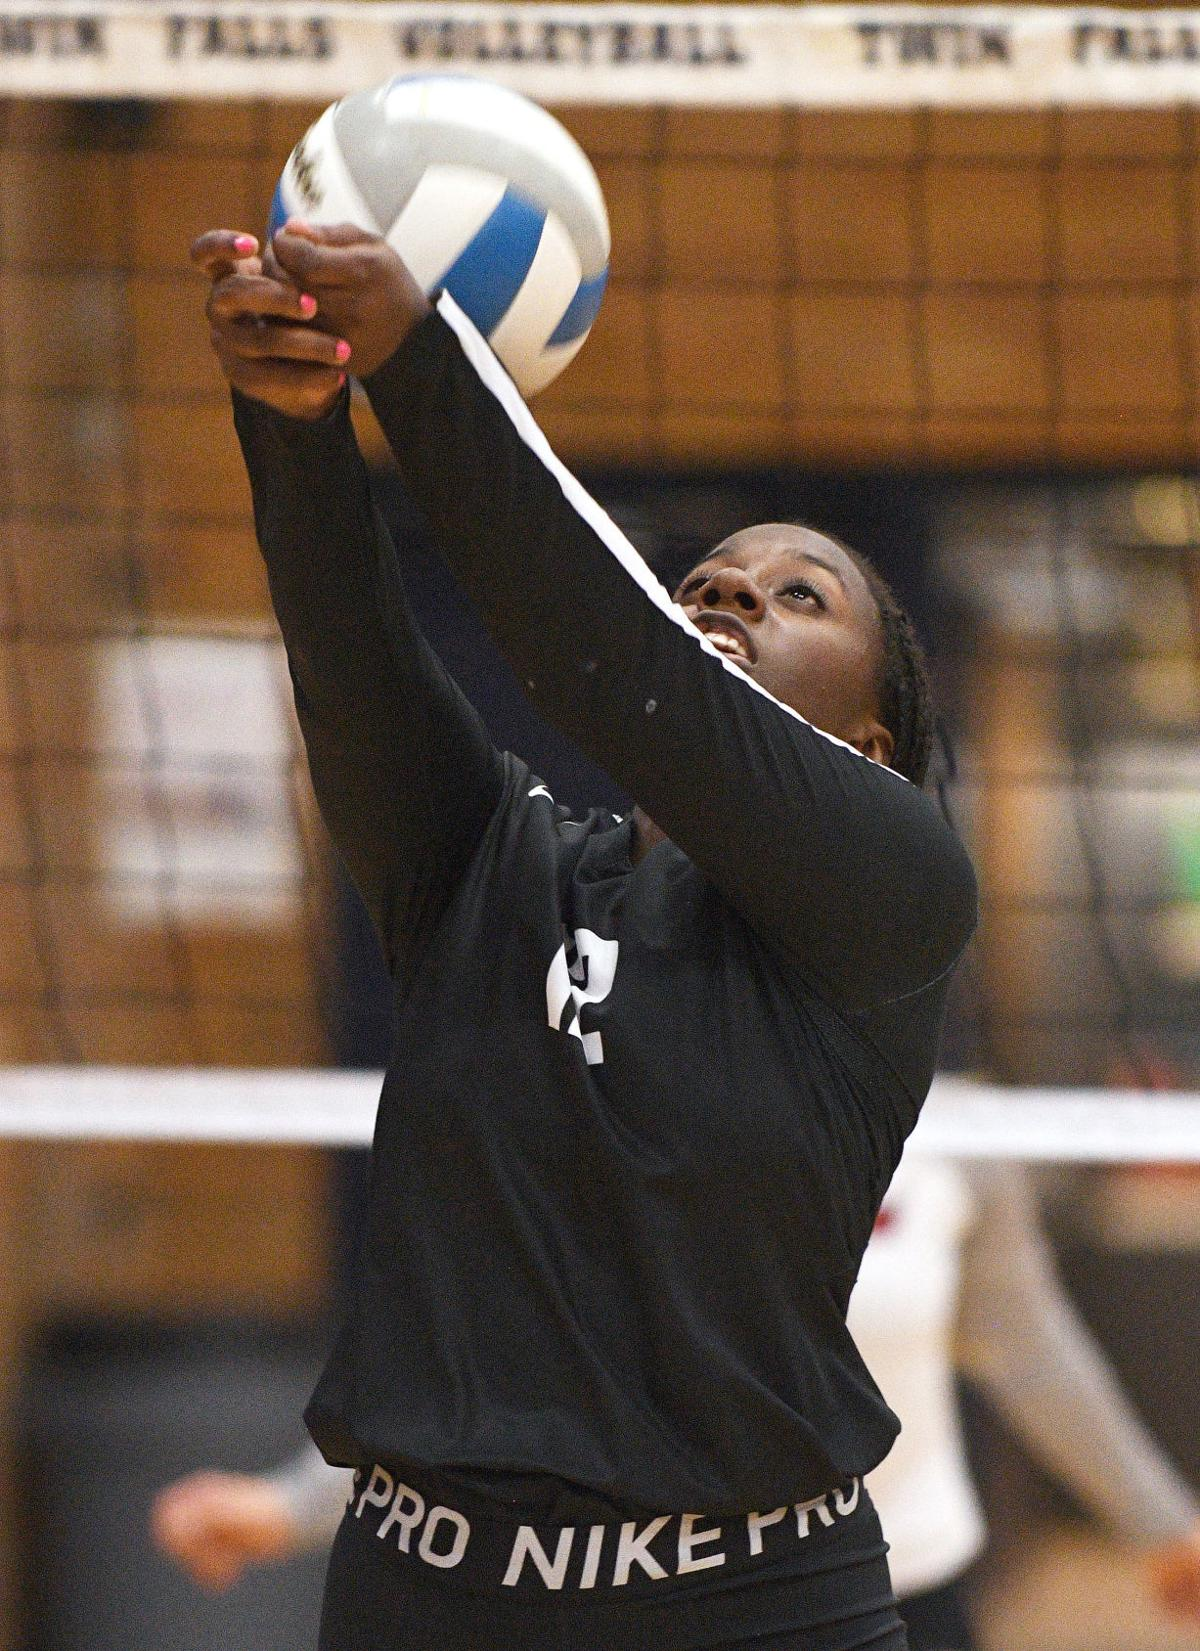 2019 4th District All-Star Volleyball